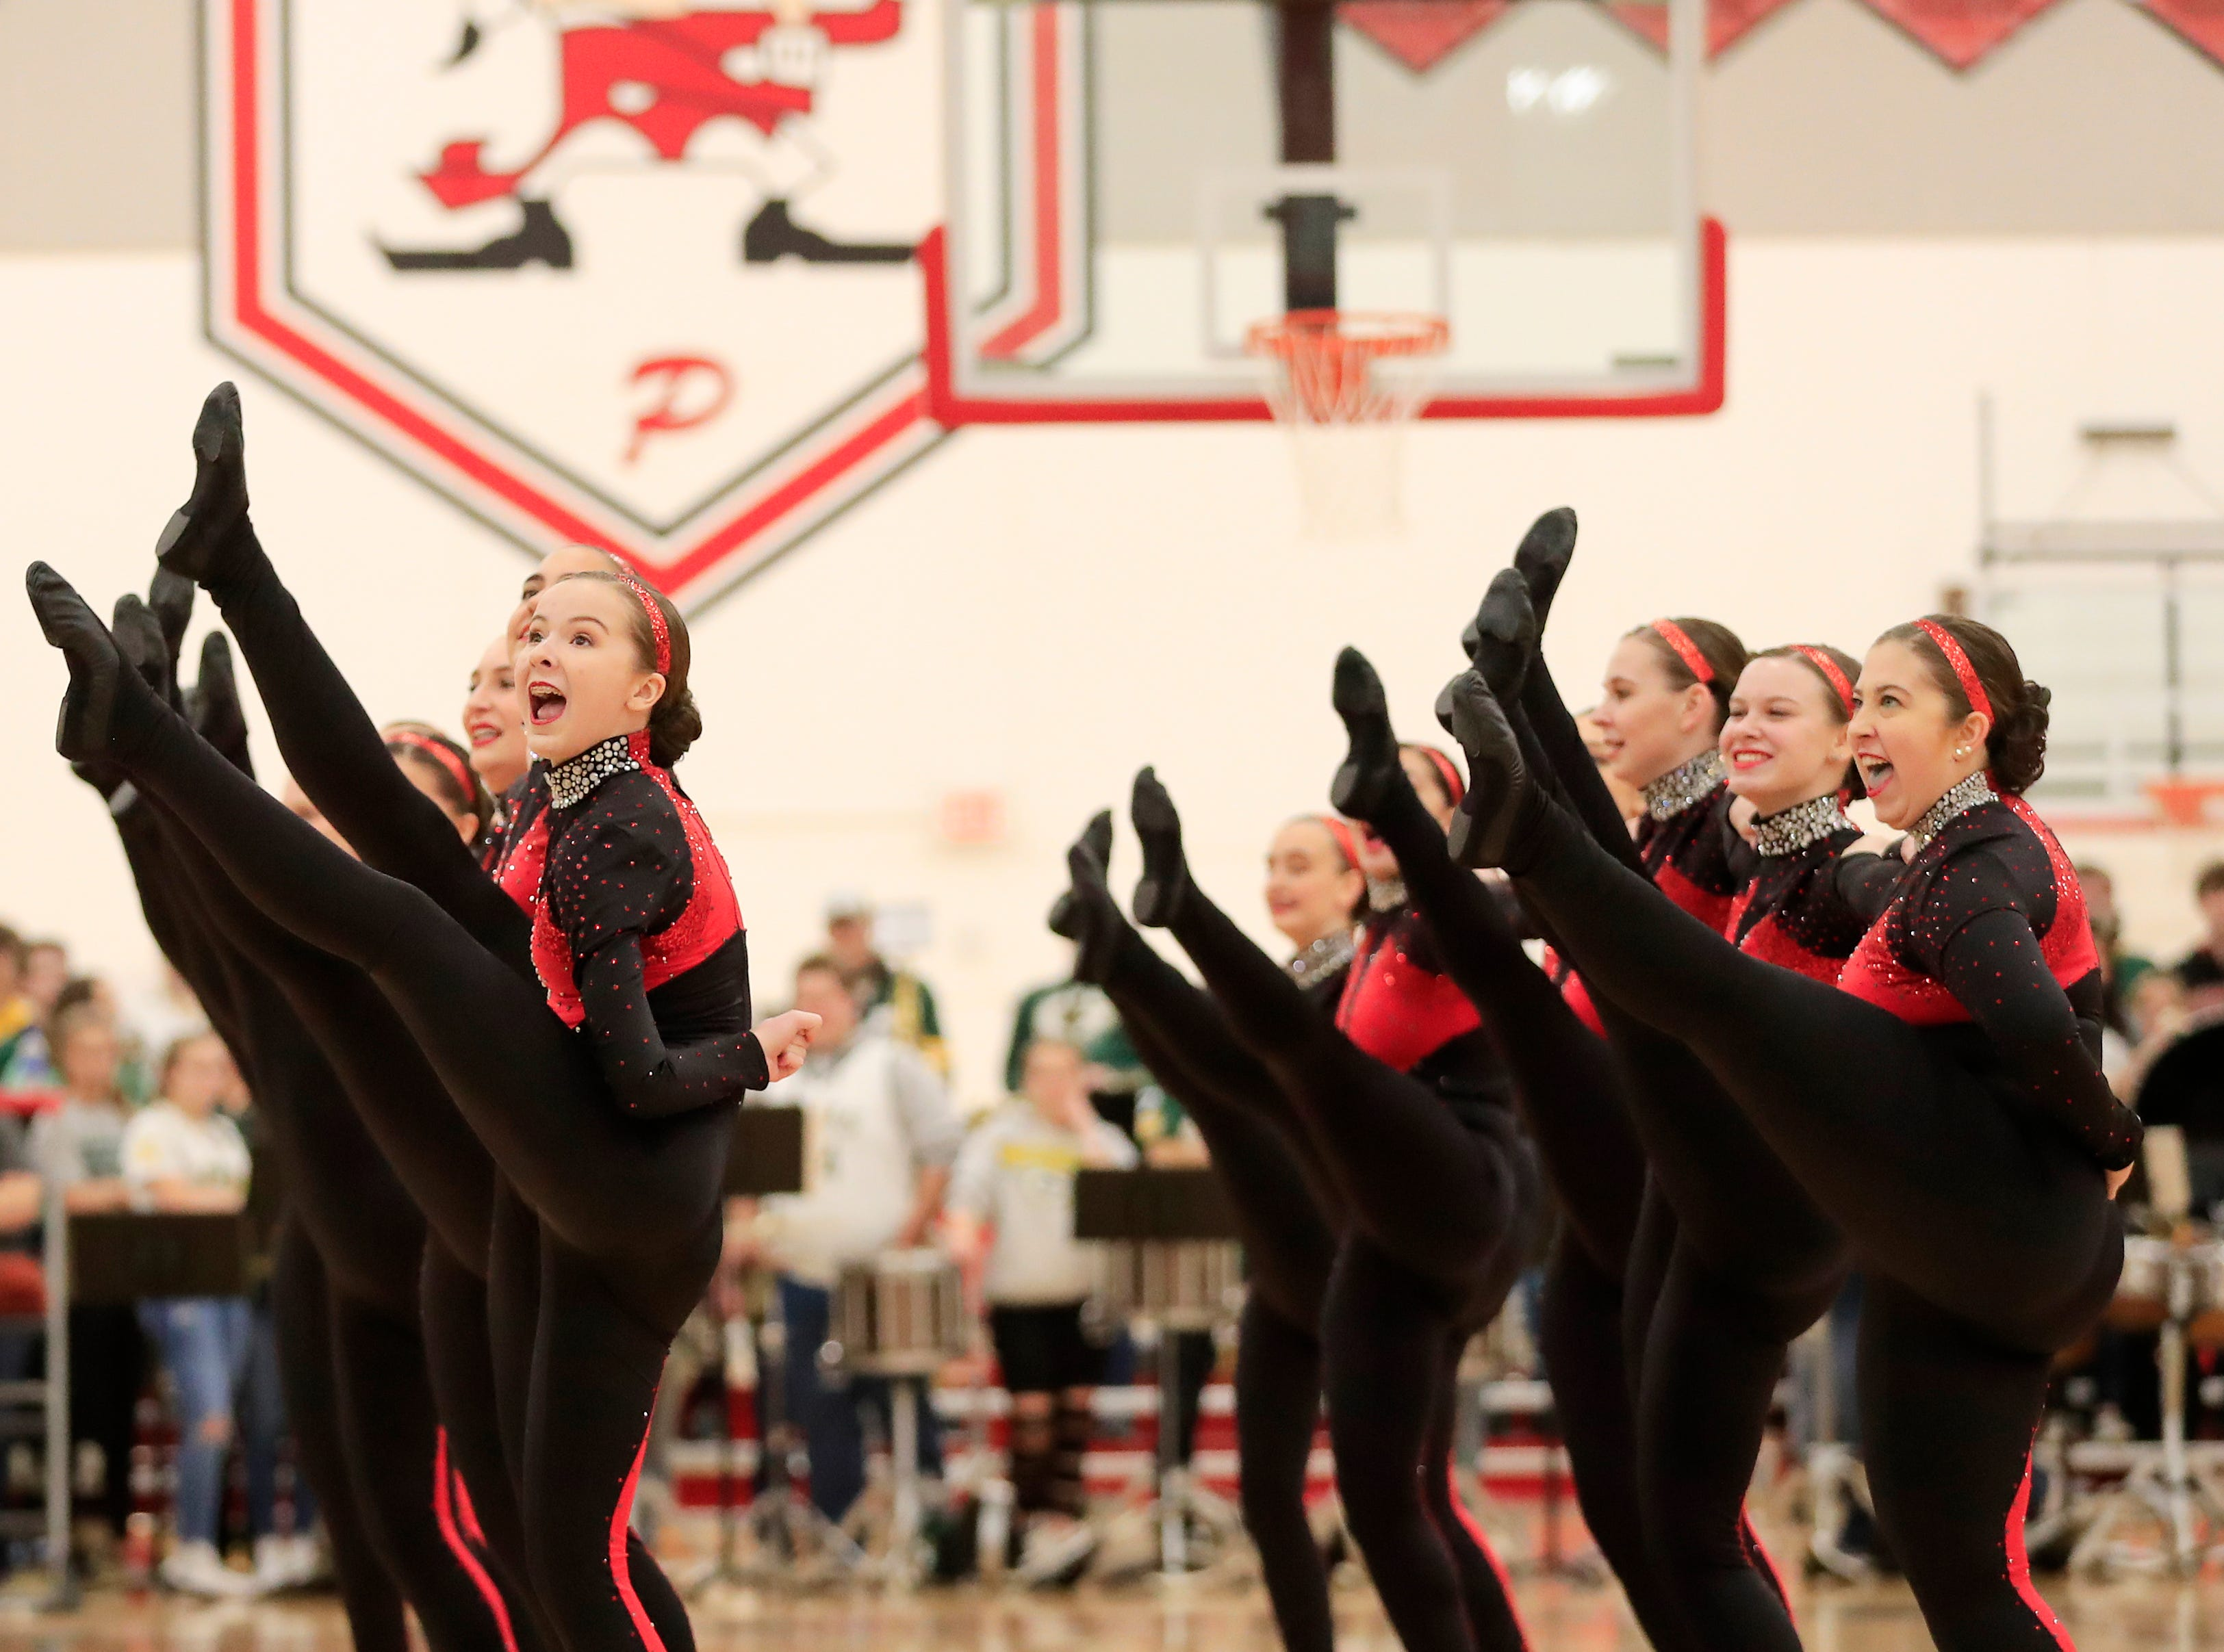 Pulaski's dance team performs at halftime of a girls basketball game at Pulaski high school on Friday, January 4, 2019 in Pulaski, Wis.